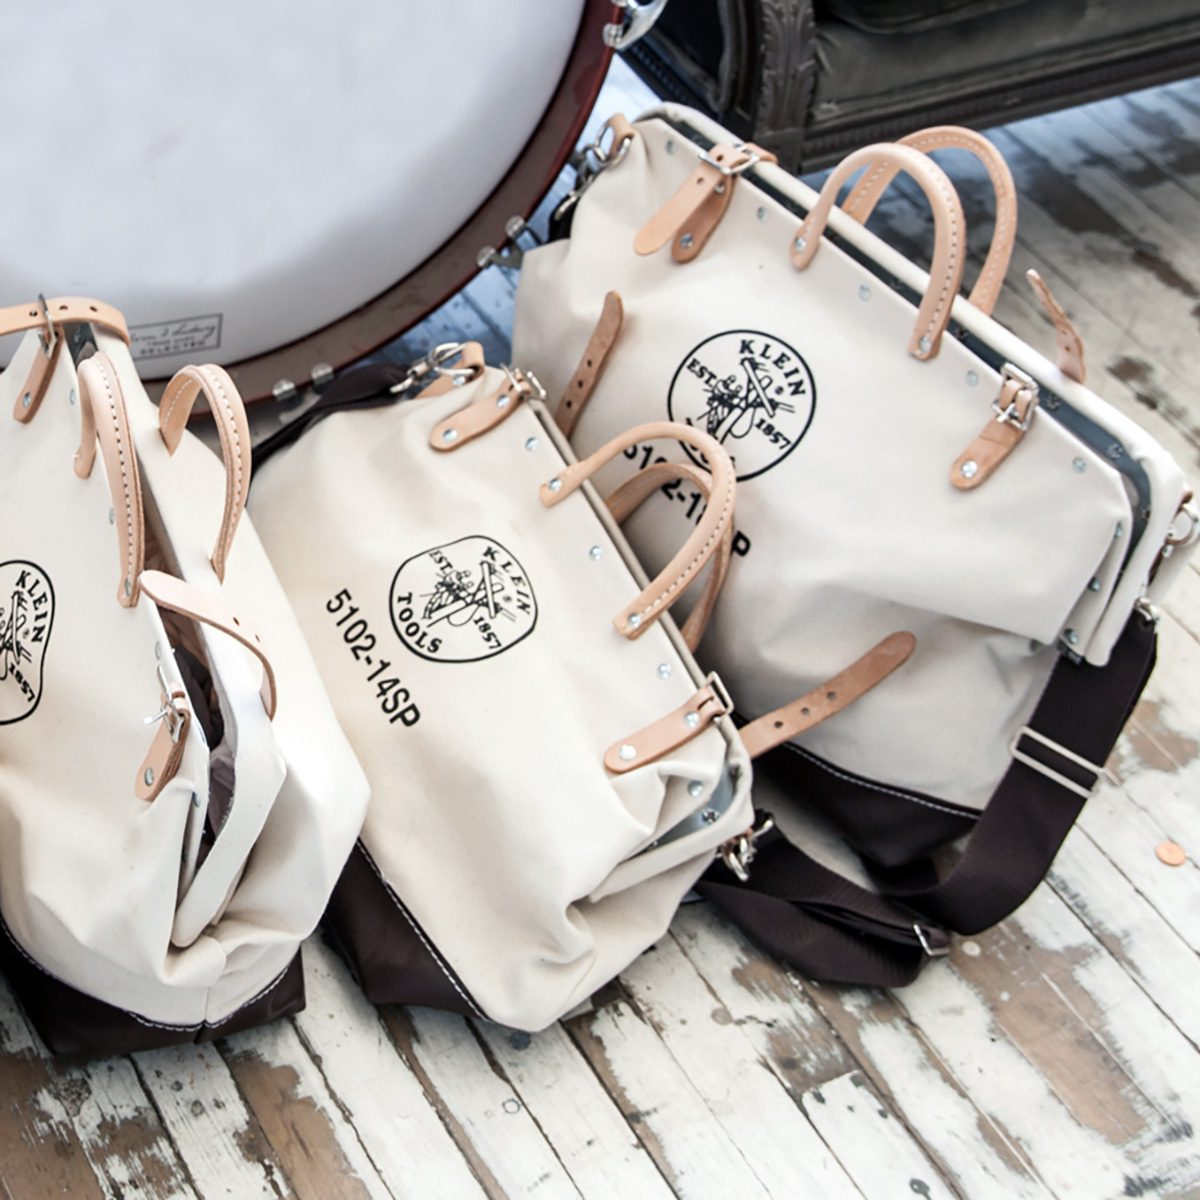 Customizable canvas bags from Klein Tools | Construction Pro Tips